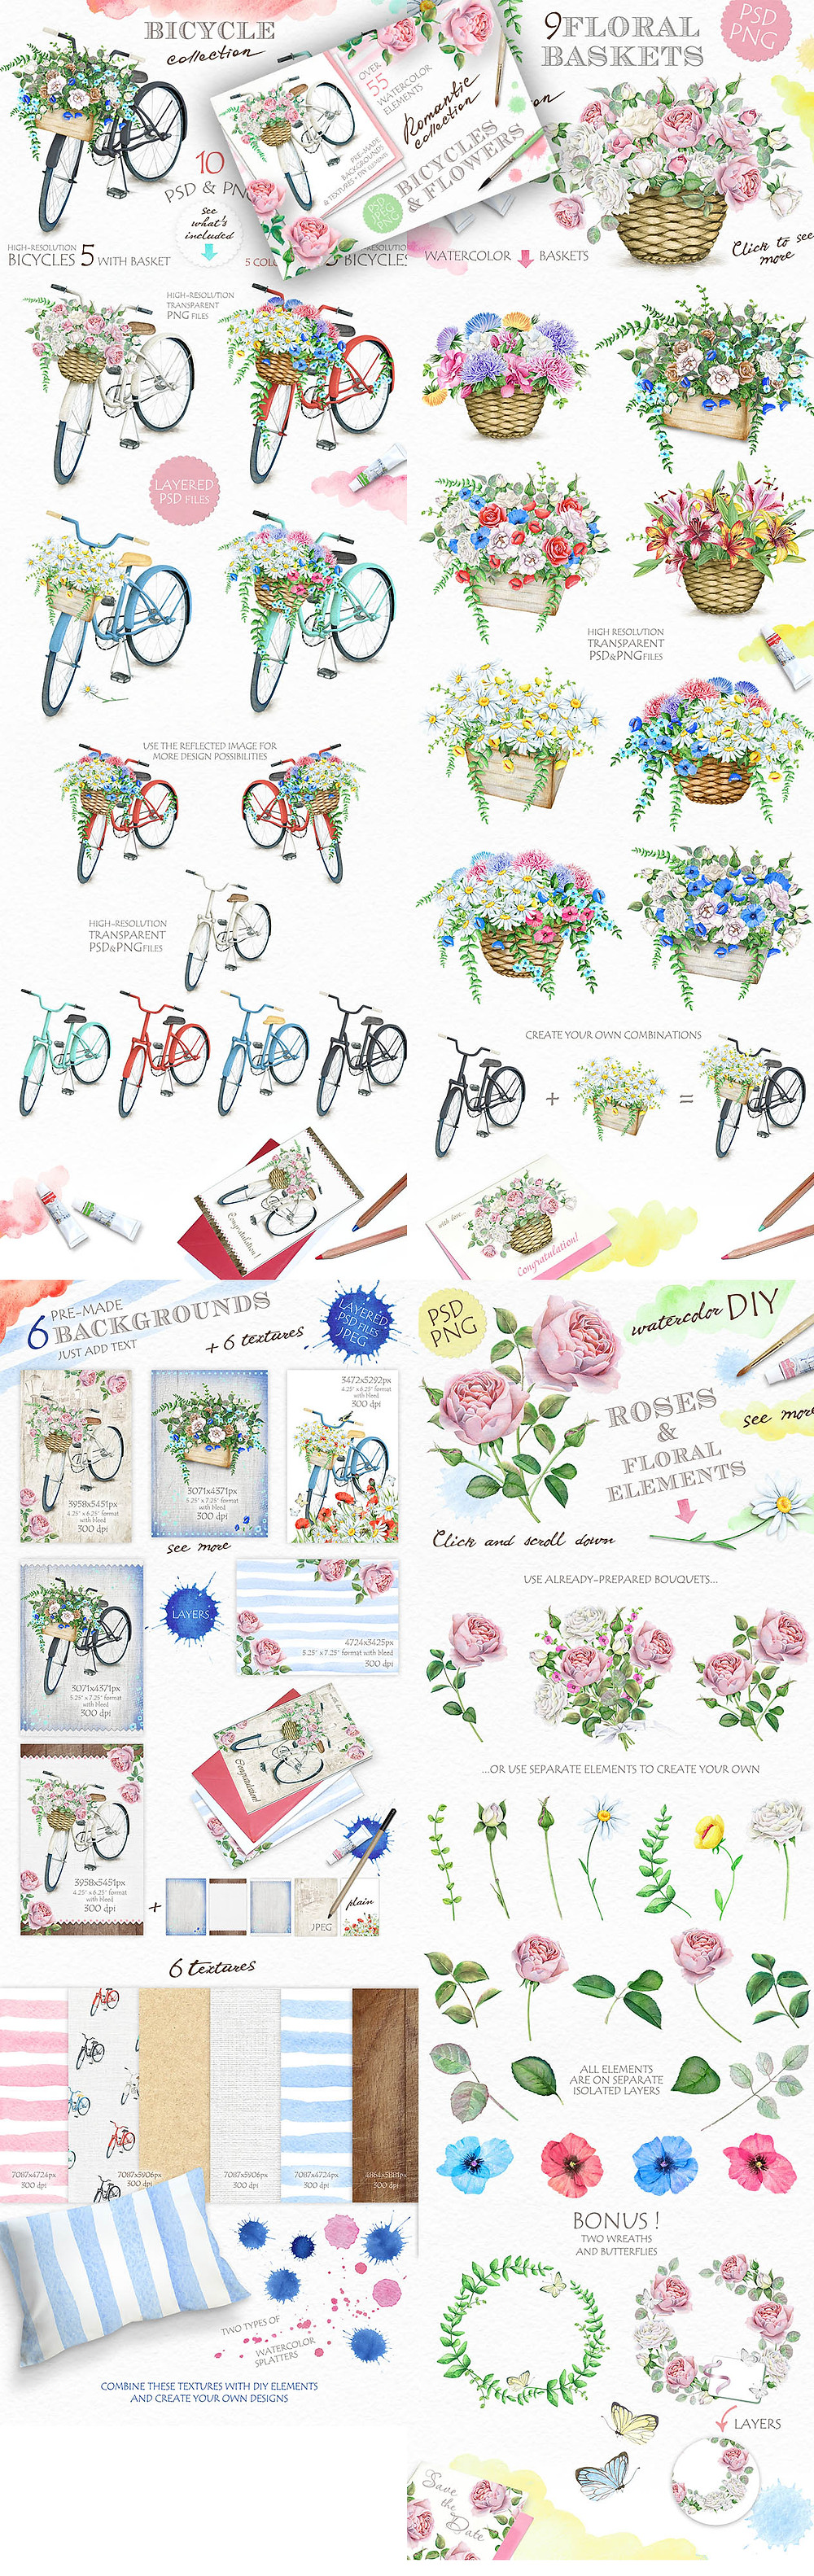 watercolor bicycles